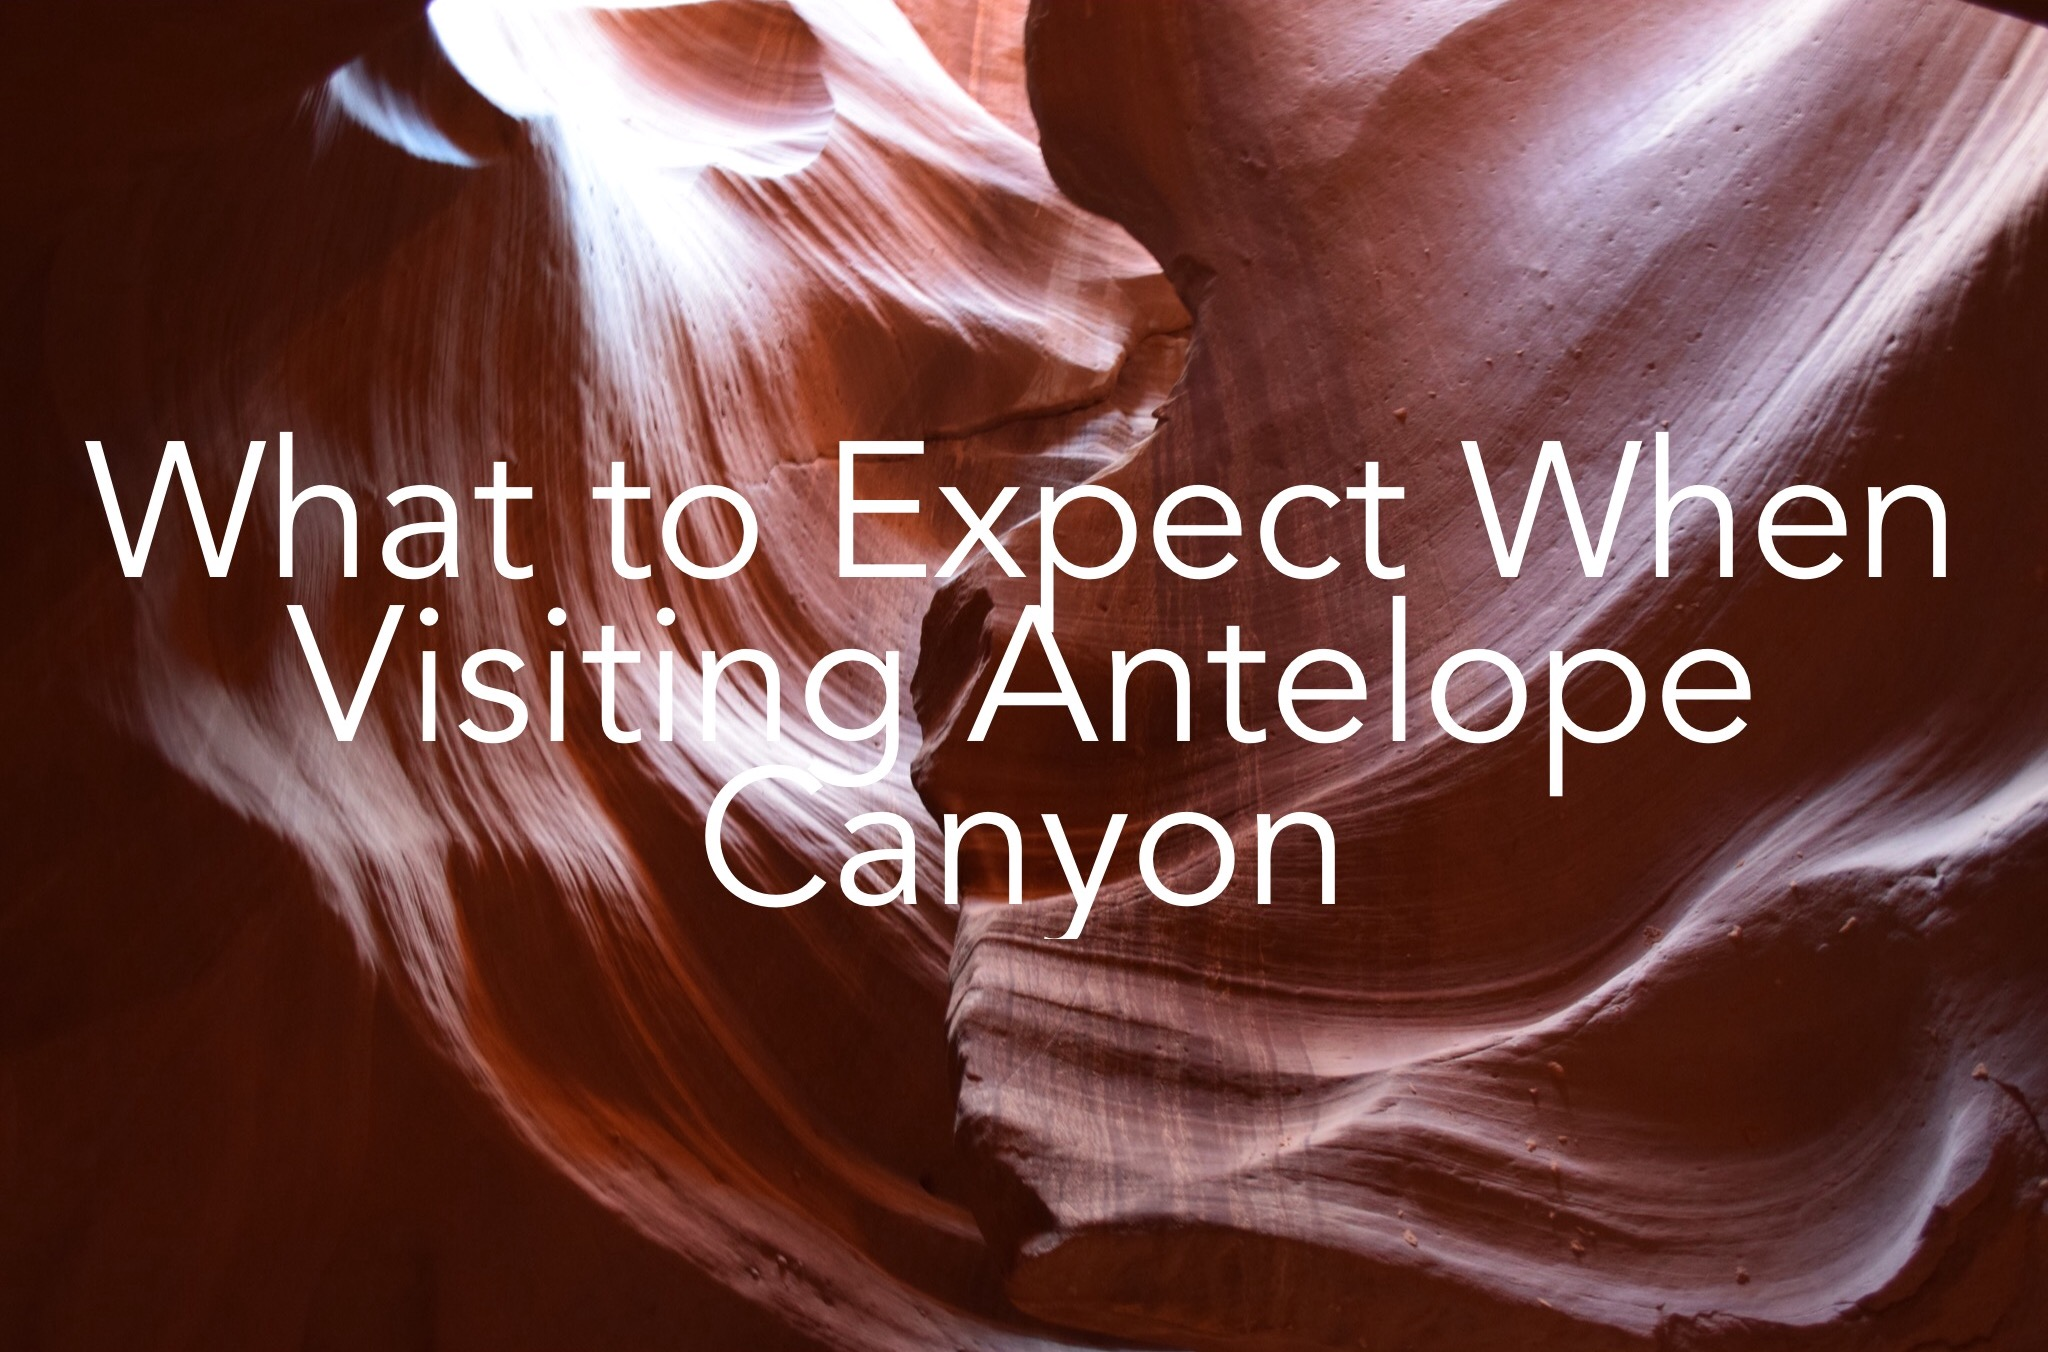 What to Expect When Visiting Antelope Canyon